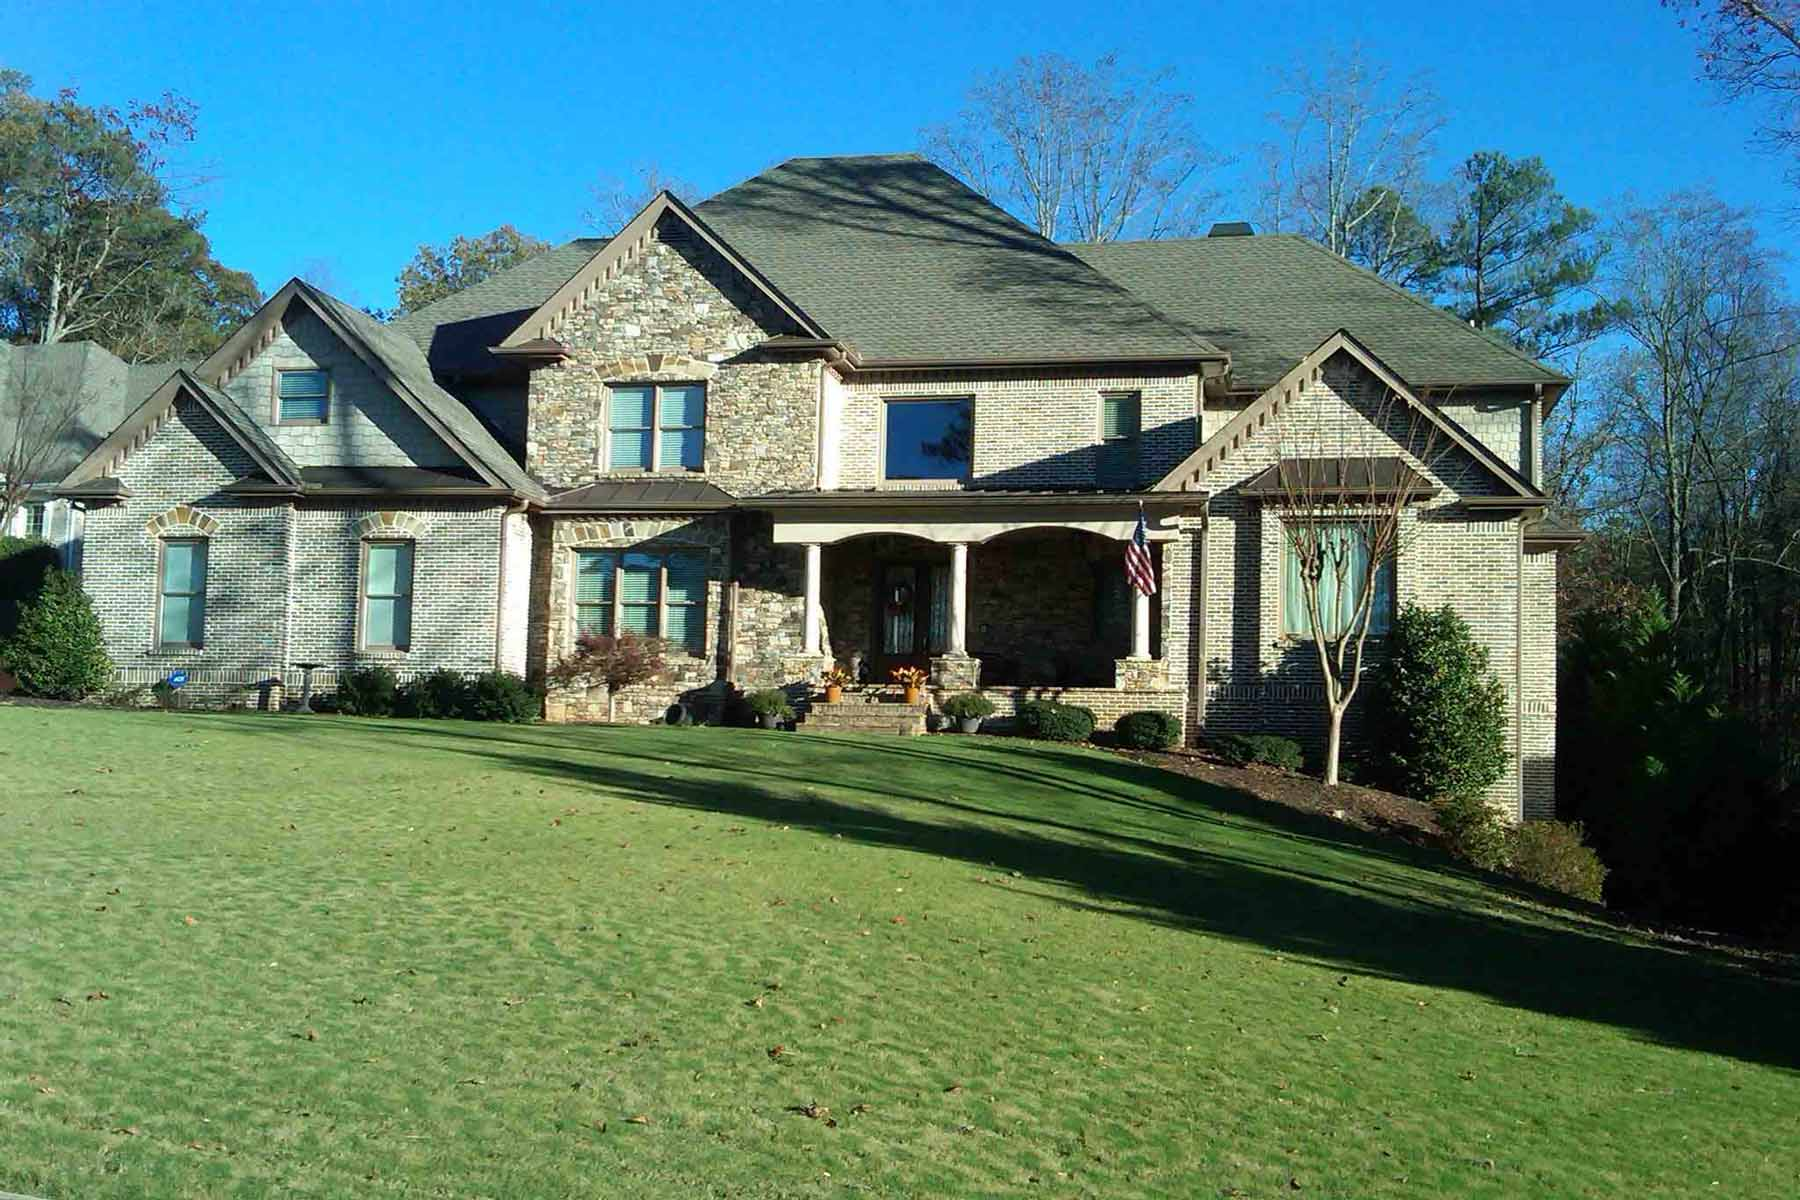 独户住宅 为 销售 在 Gorgeous 6 Bedroom Home on 1.3 acres in Lake Charles Estates 1025 Wordsworth Drive 罗斯威尔, 乔治亚州, 30075 美国